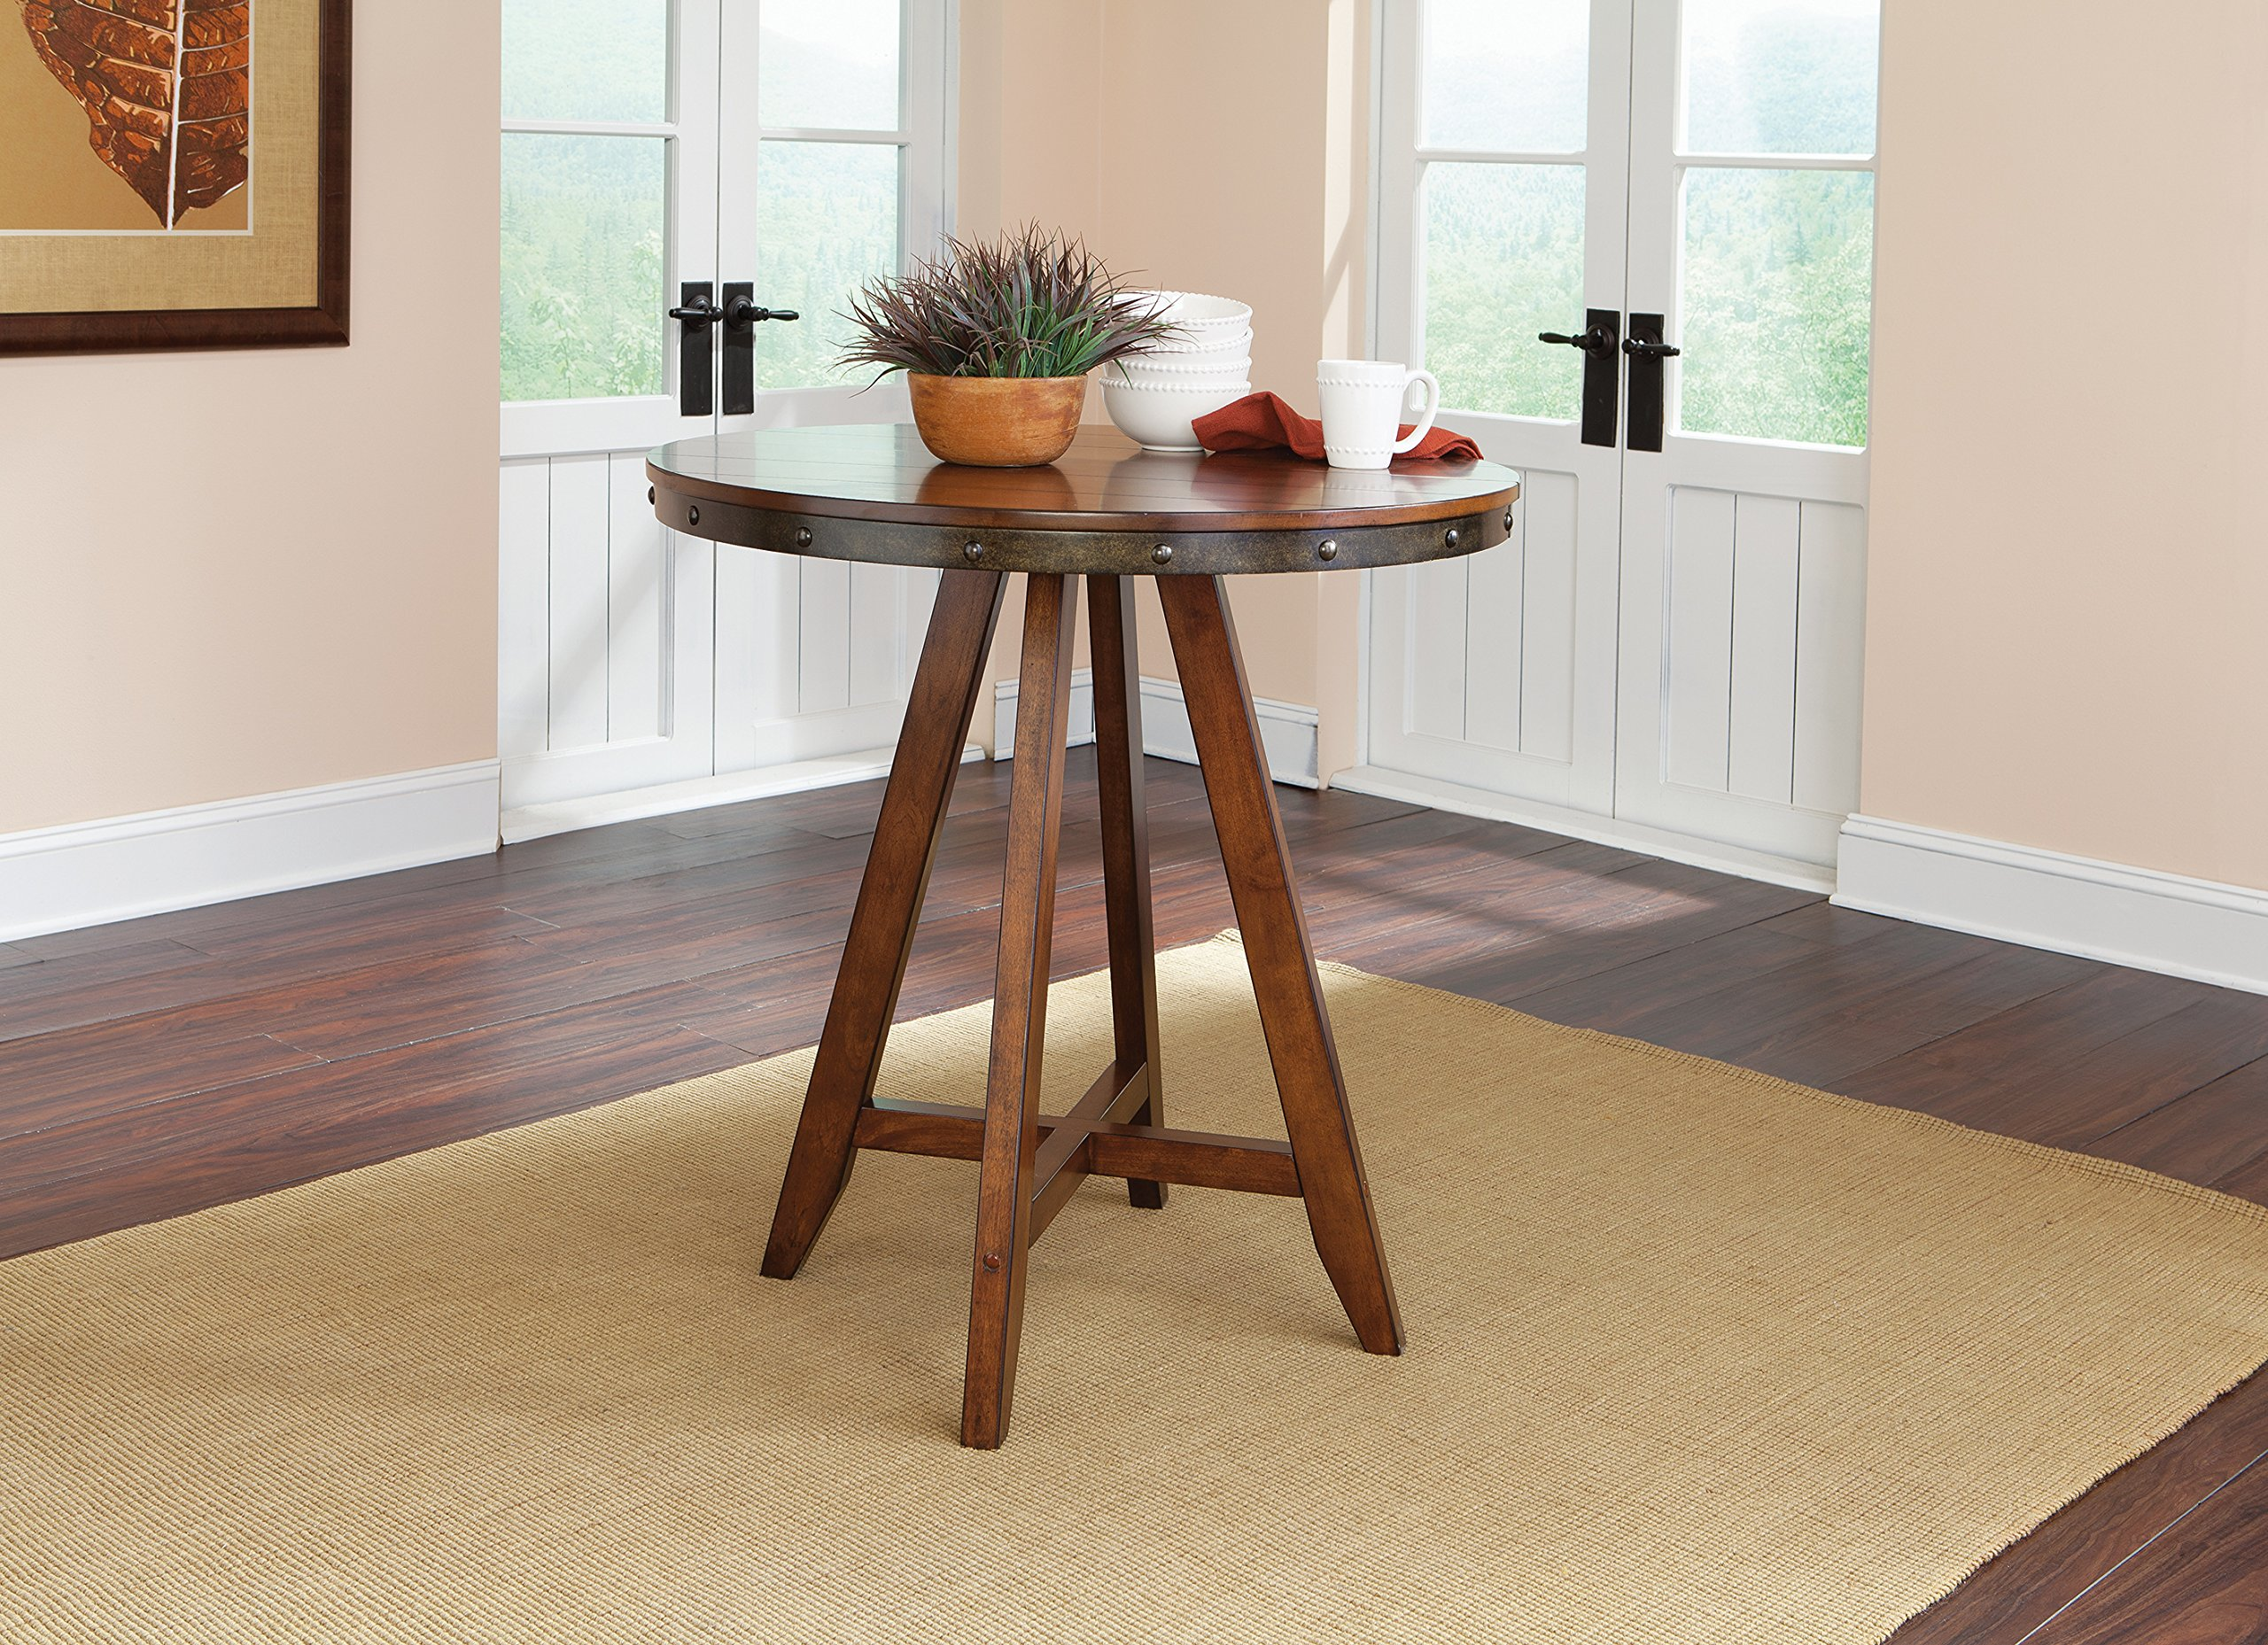 "Sauder 415089 Carson Forge Round Counter-Ht Table, Washington Cherry Finish - Durable, wood composite top Solid wood legs W: 35.984"" X D: 38.984"" X H: 35.00"" - kitchen-dining-room-furniture, kitchen-dining-room, kitchen-dining-room-tables - 91tnS7p7n%2BL -"